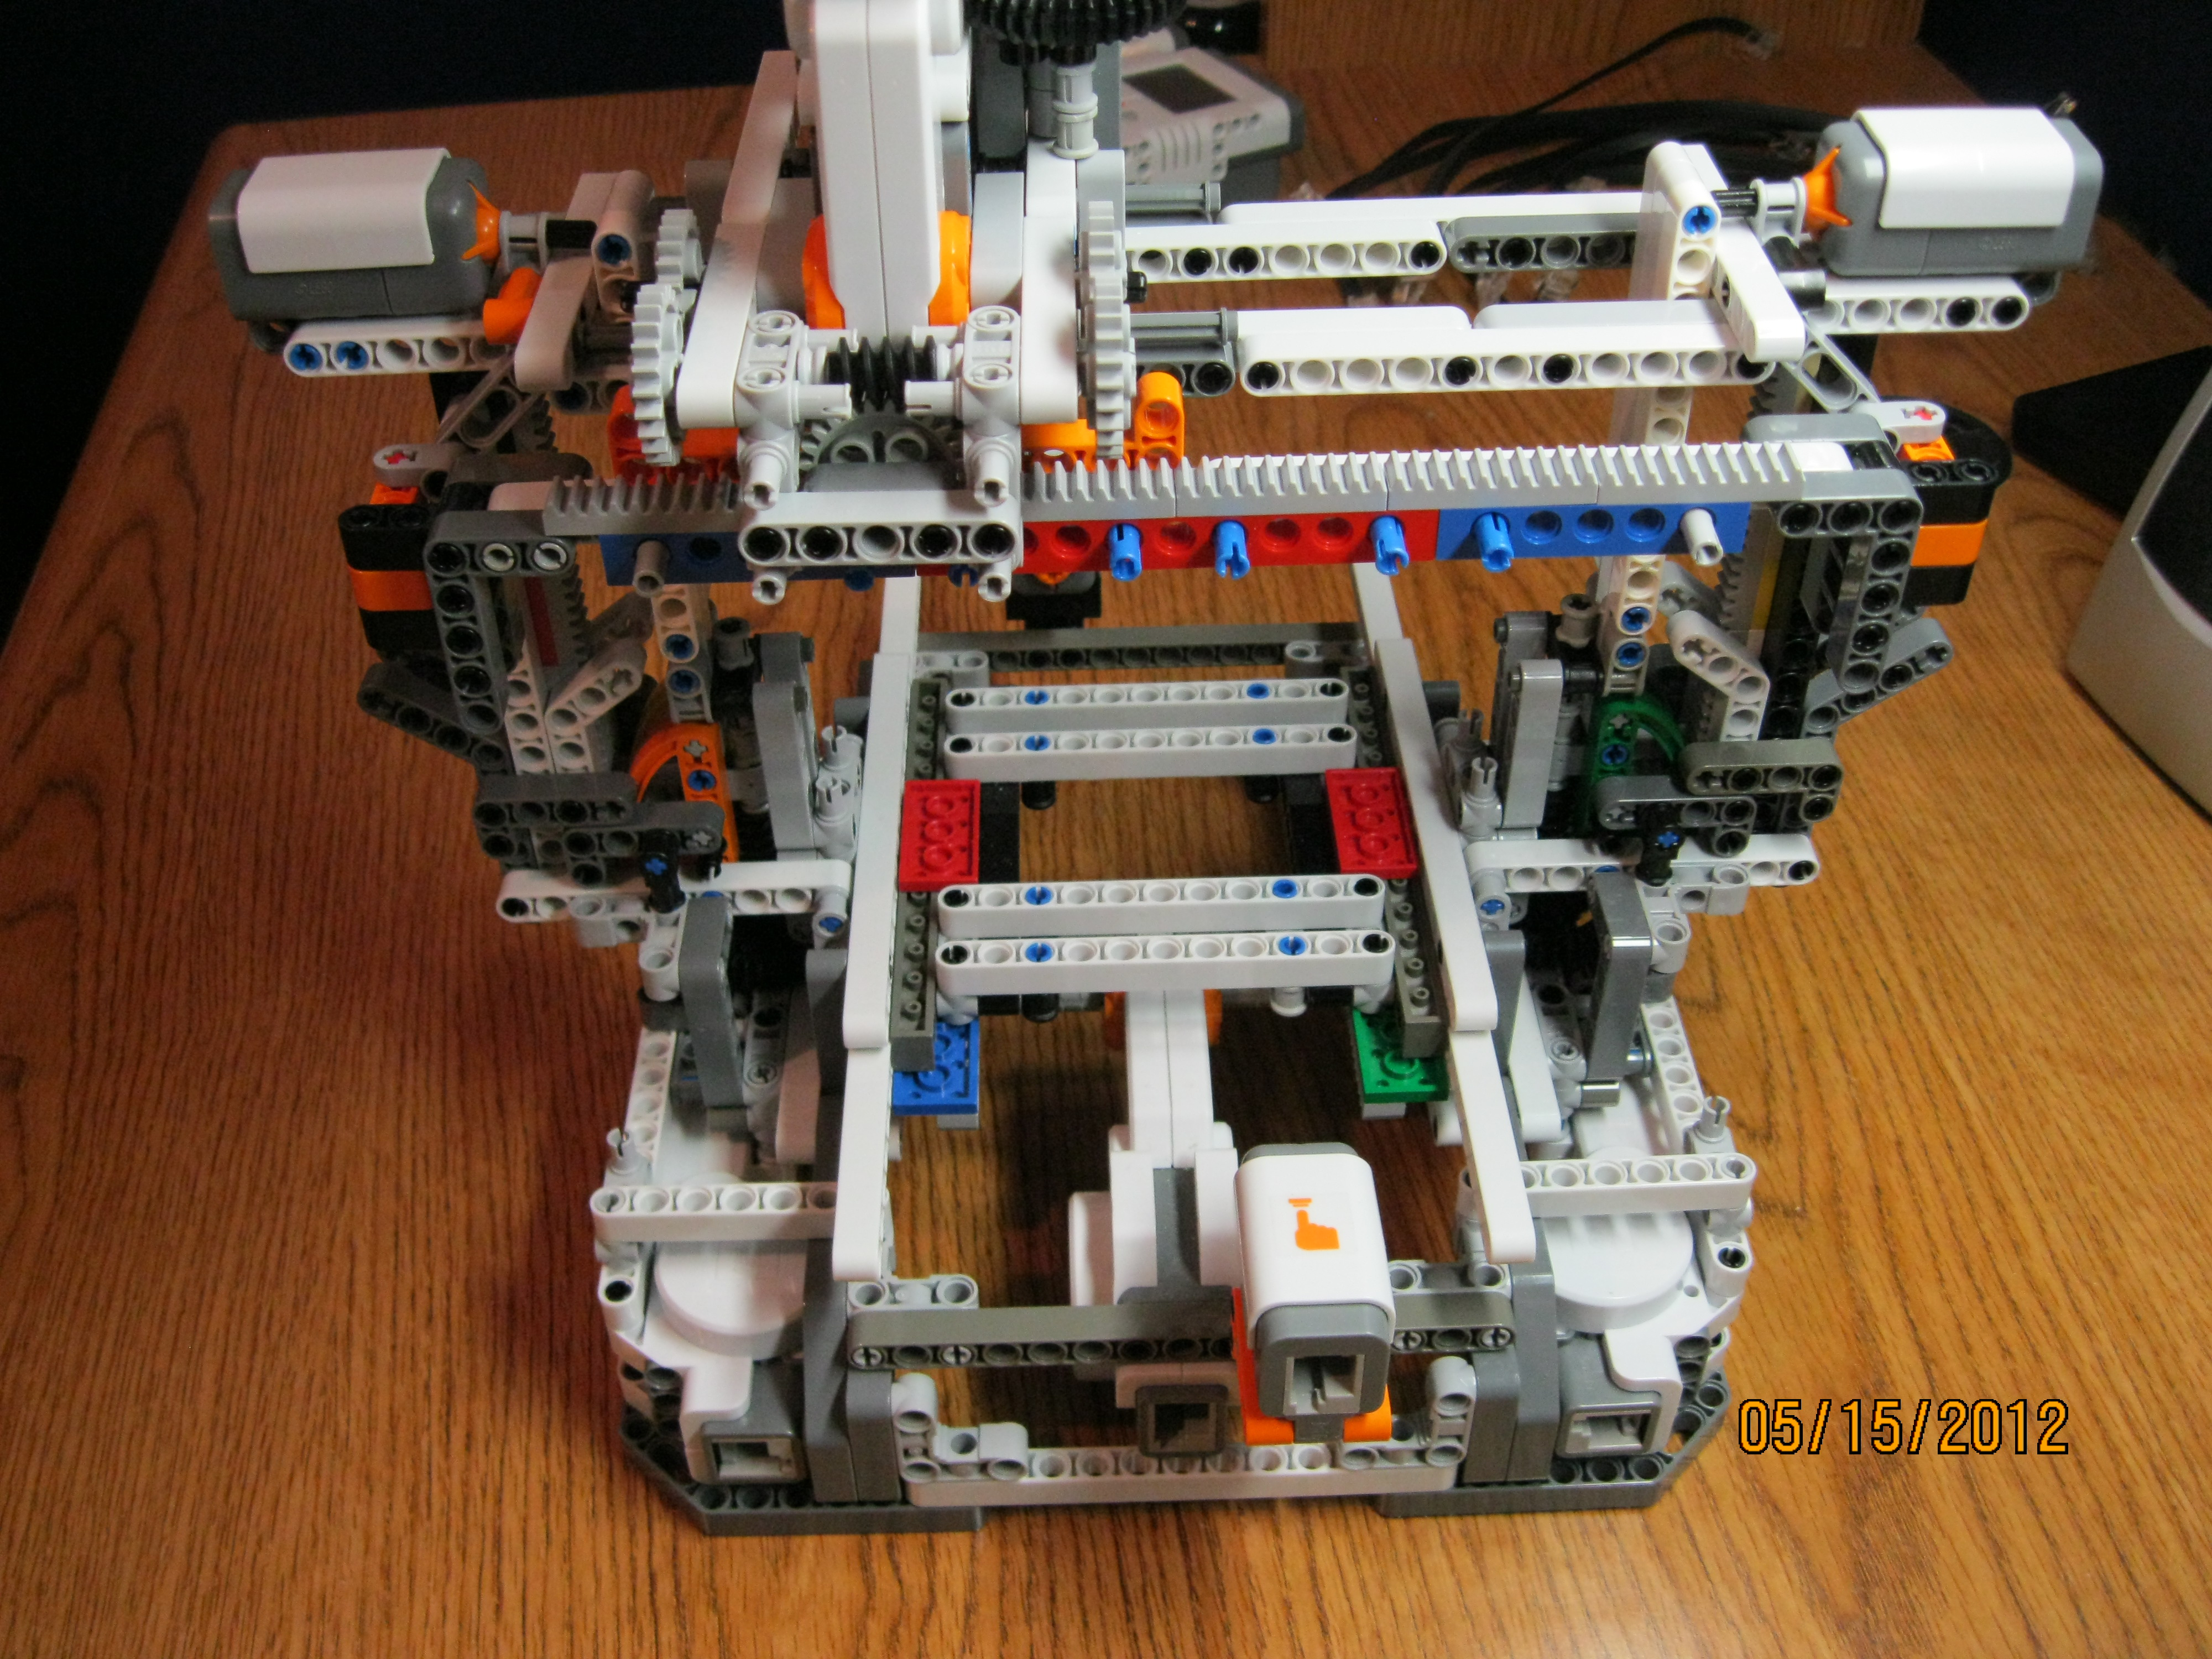 Lego CNC/3D printer/plotter